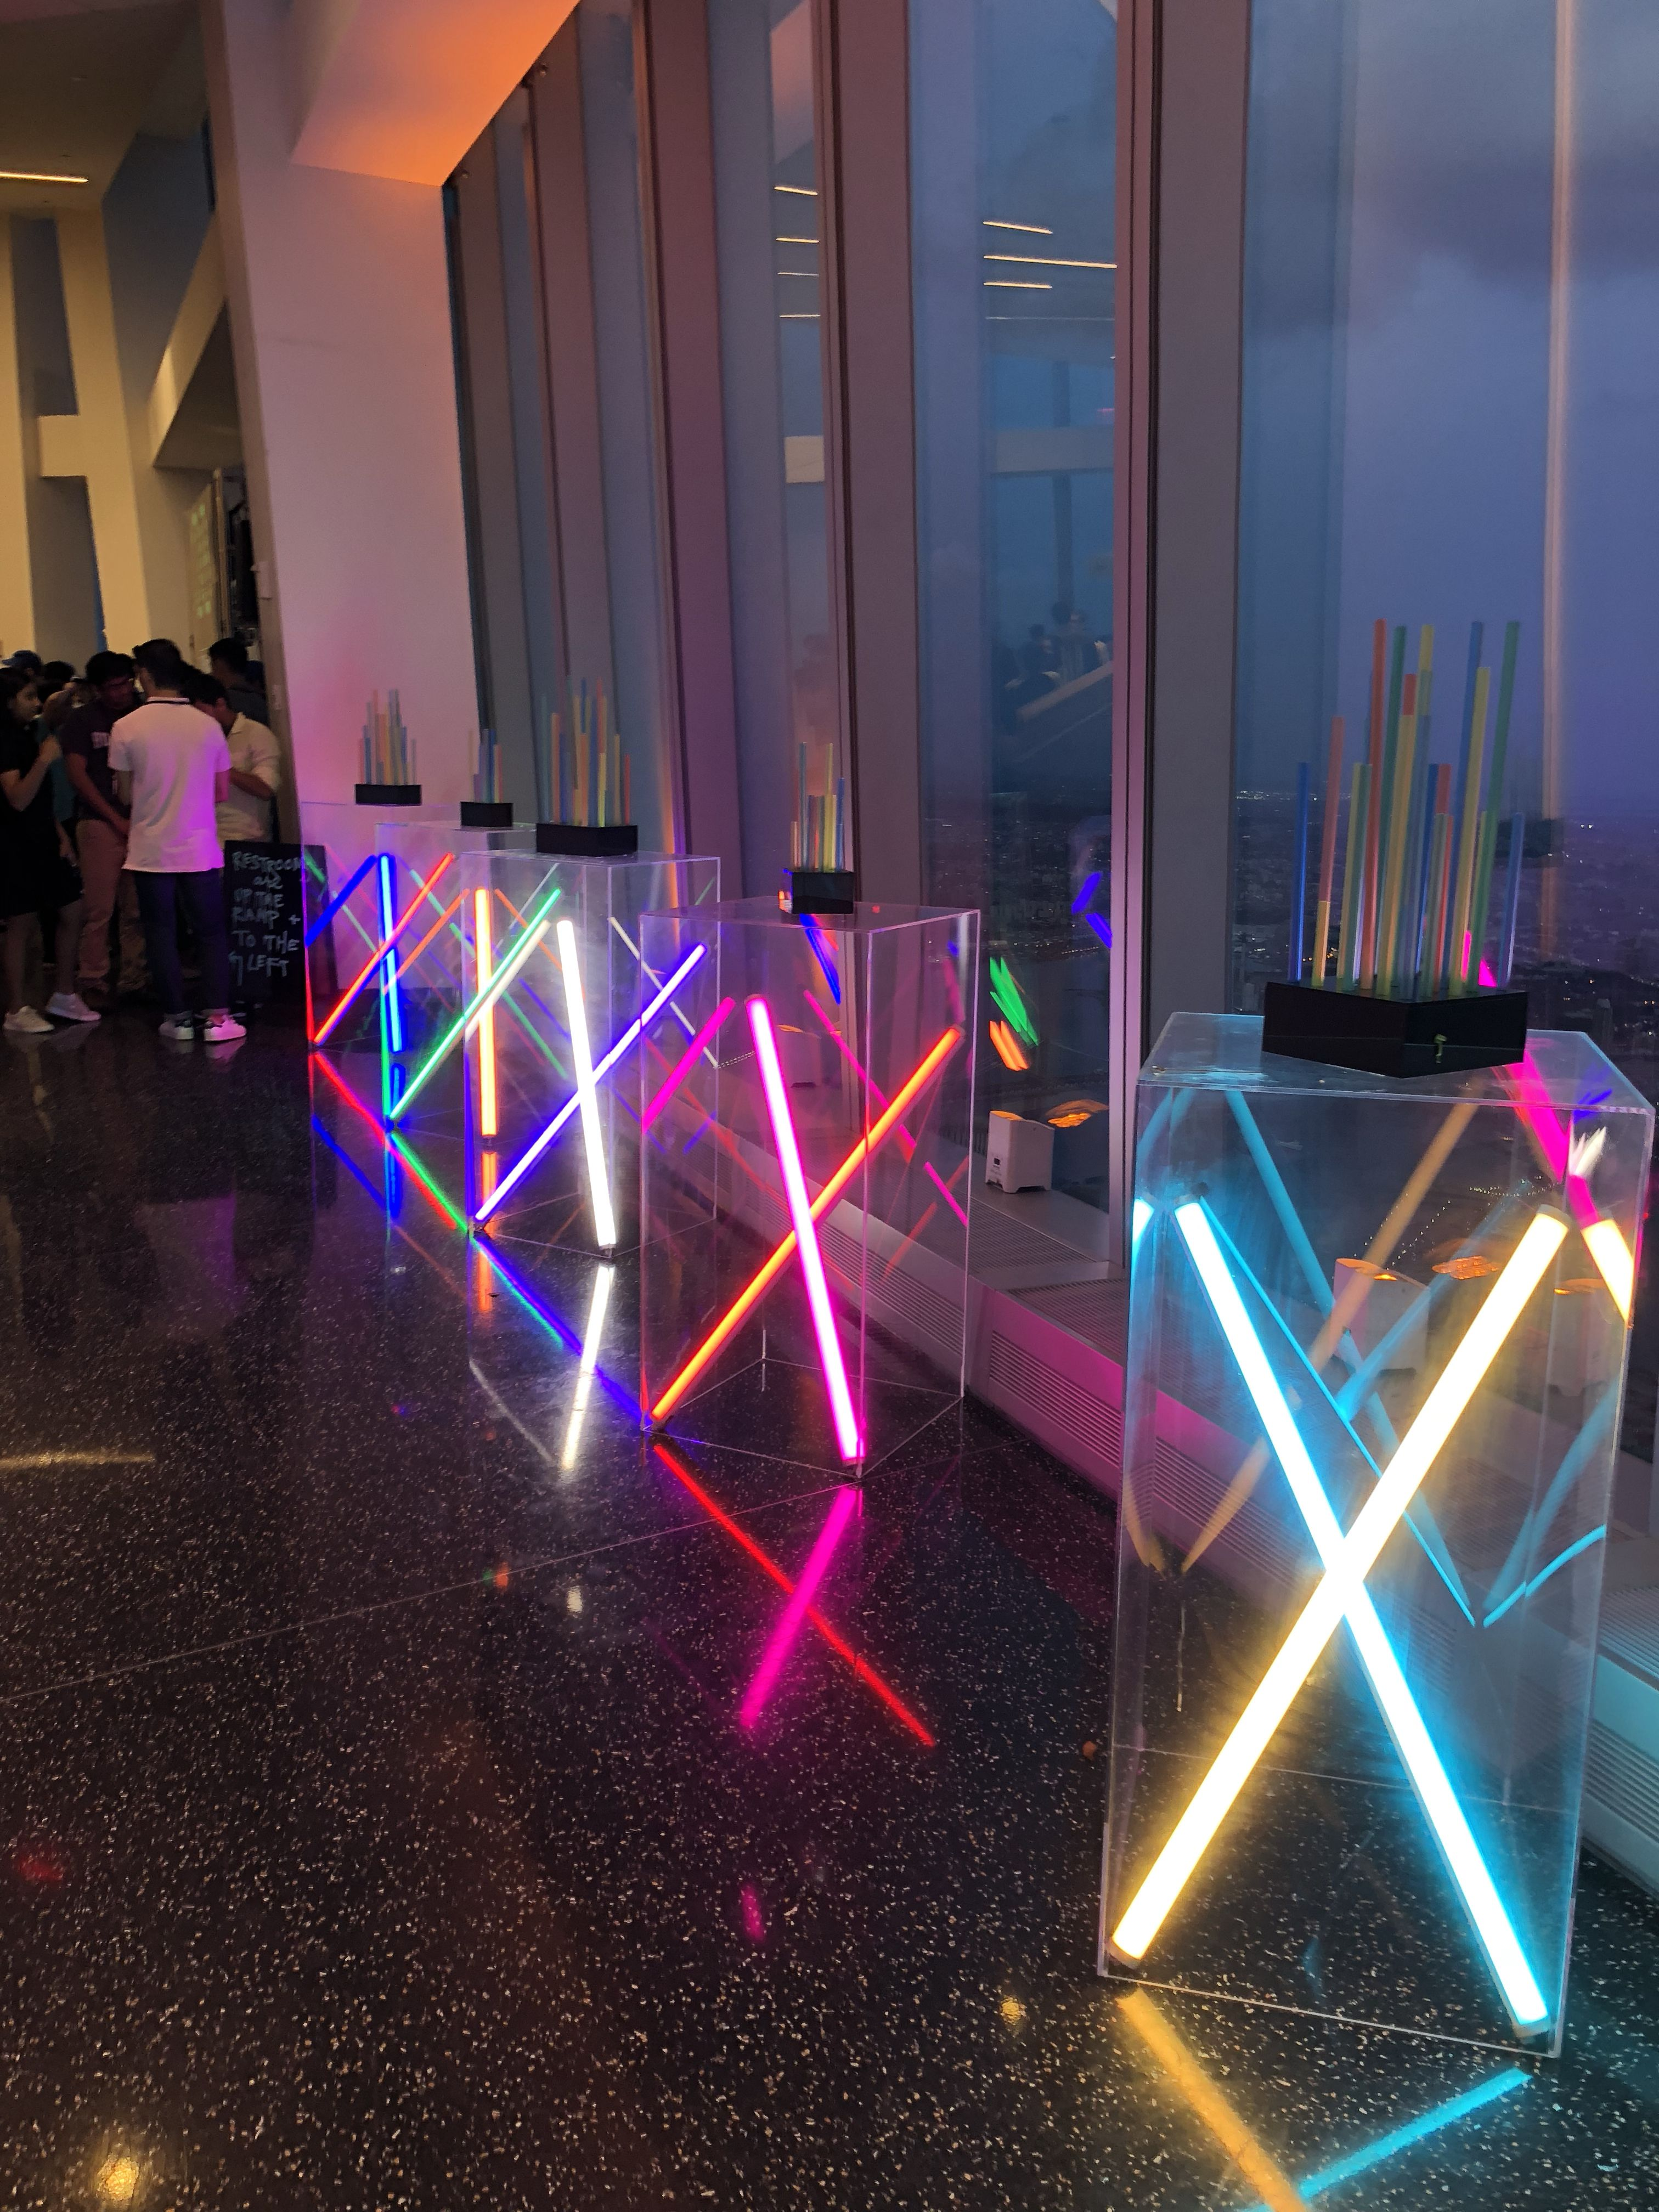 Pin By Renee On Eoy 2018 Consolidated Light Installation Event